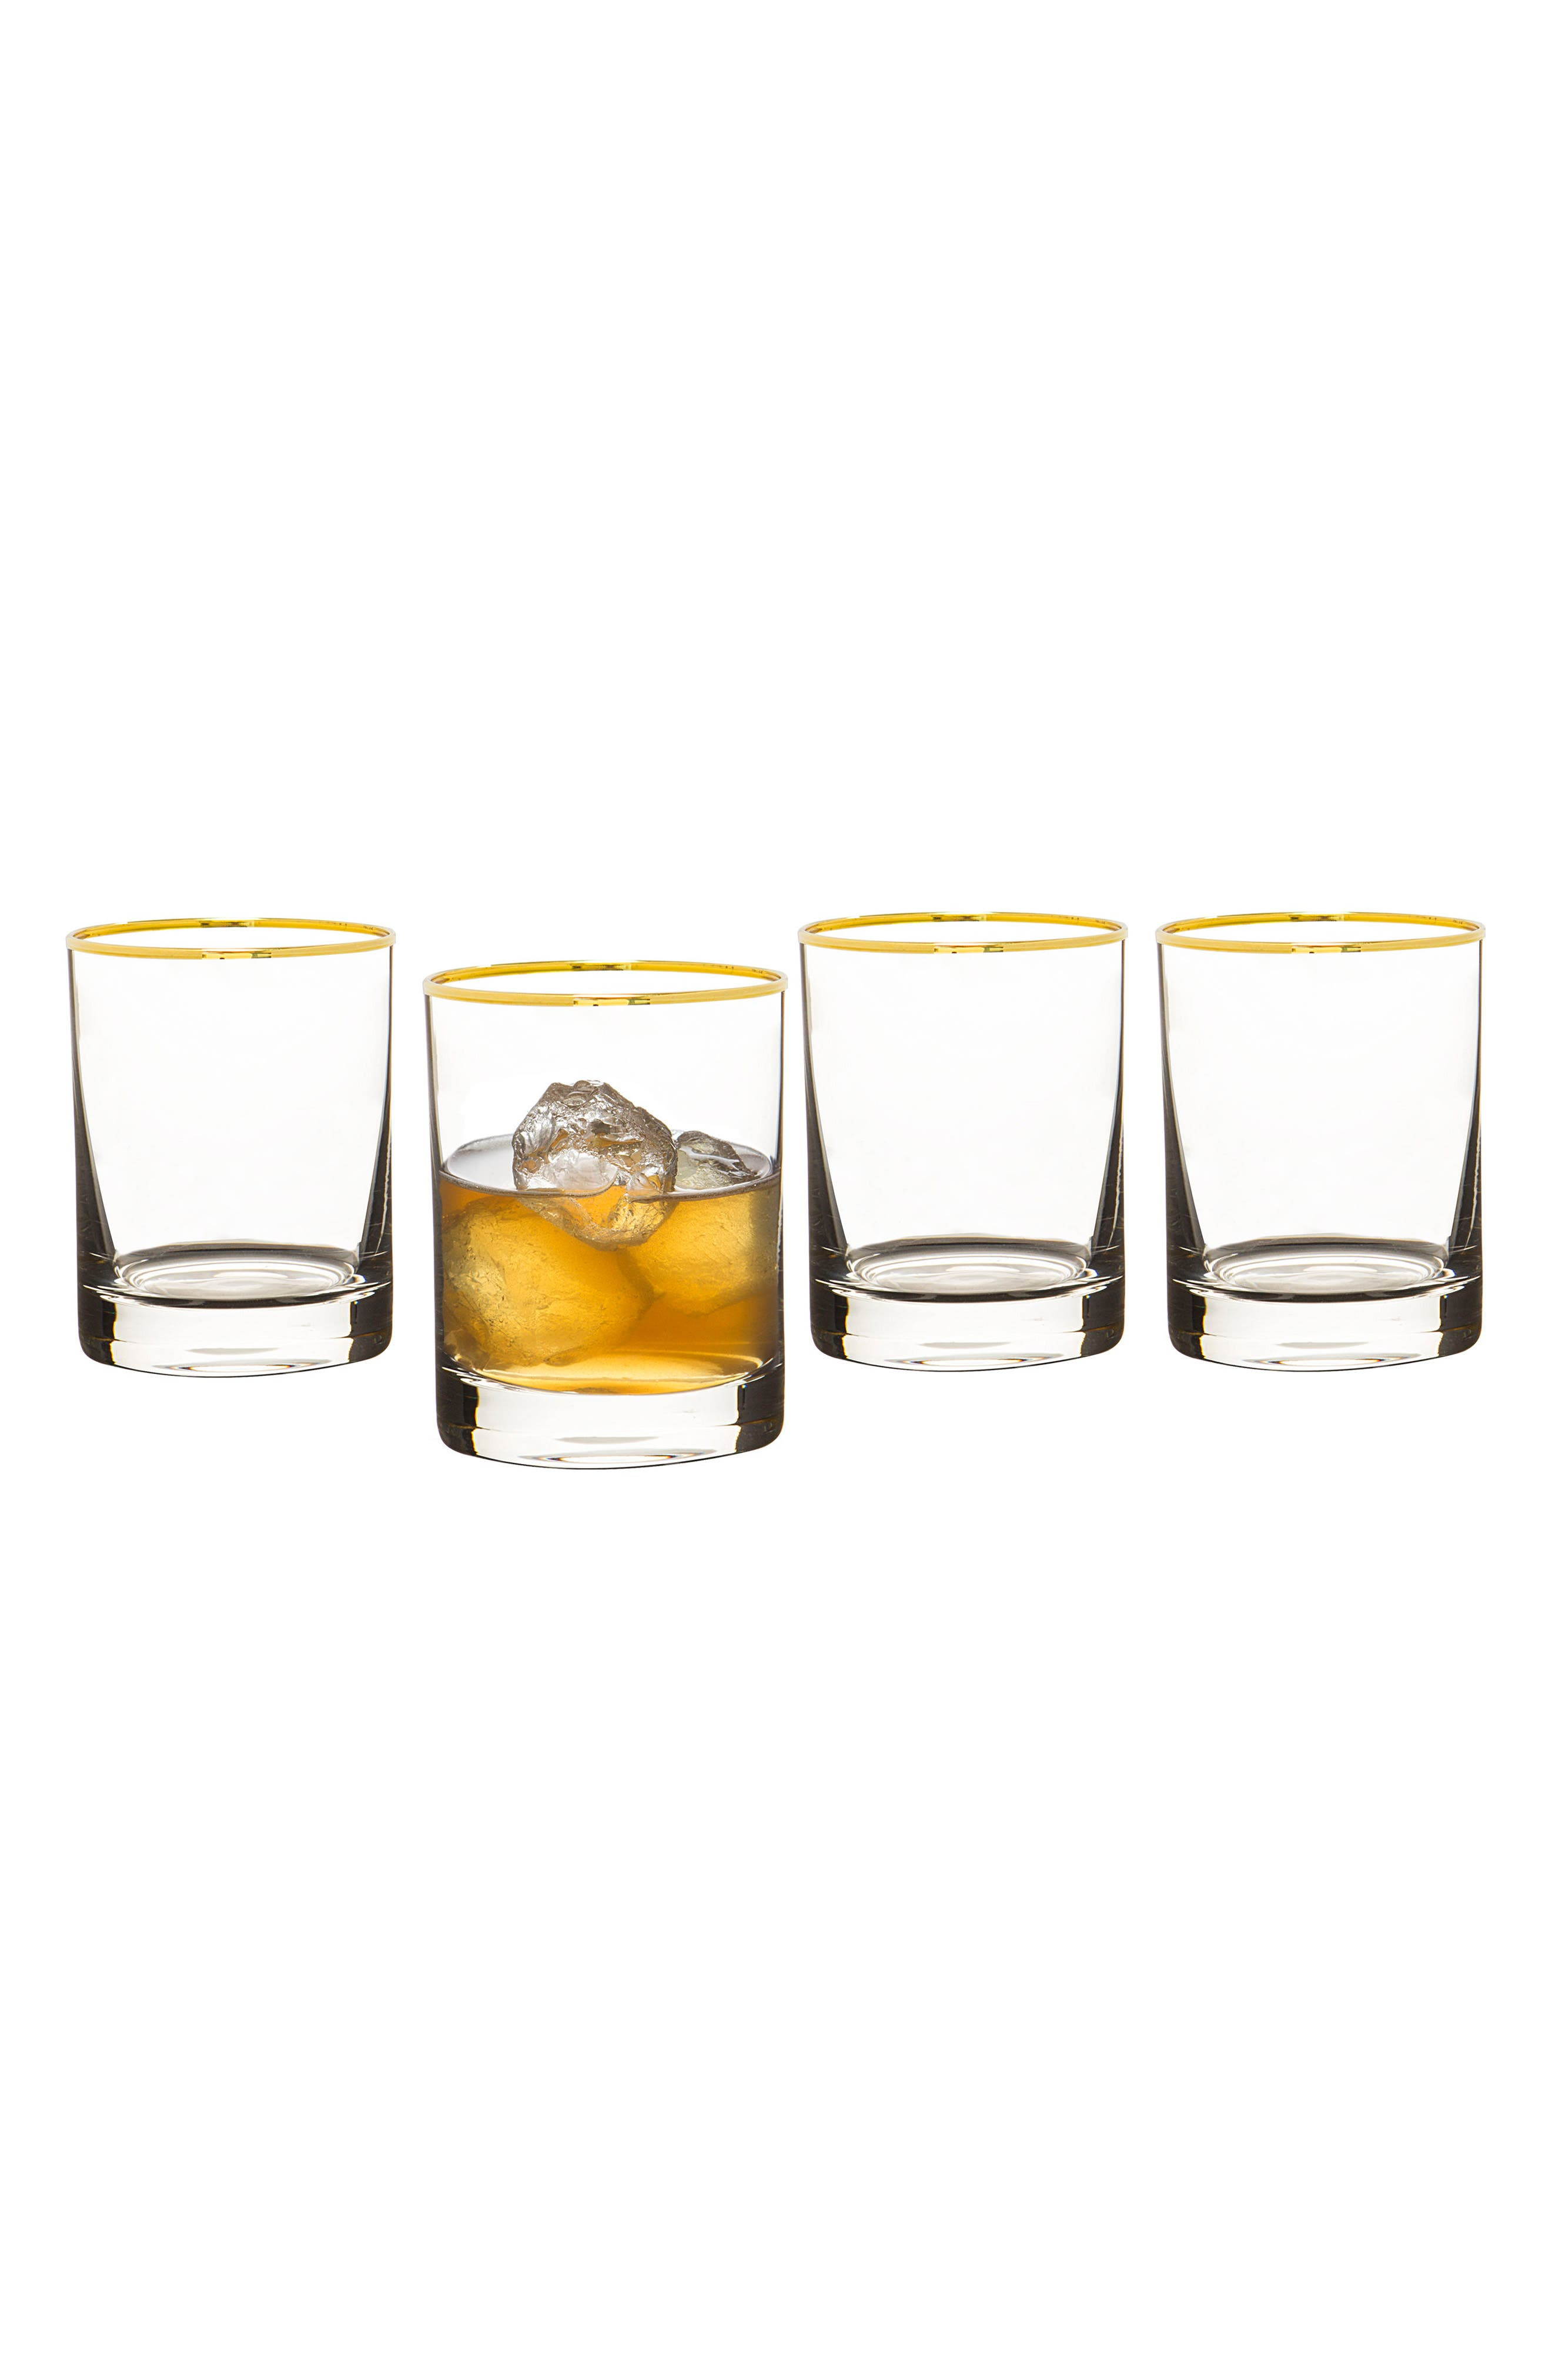 Monogram Set of 4 Double Old Fashioned Glasses,                         Main,                         color, 710